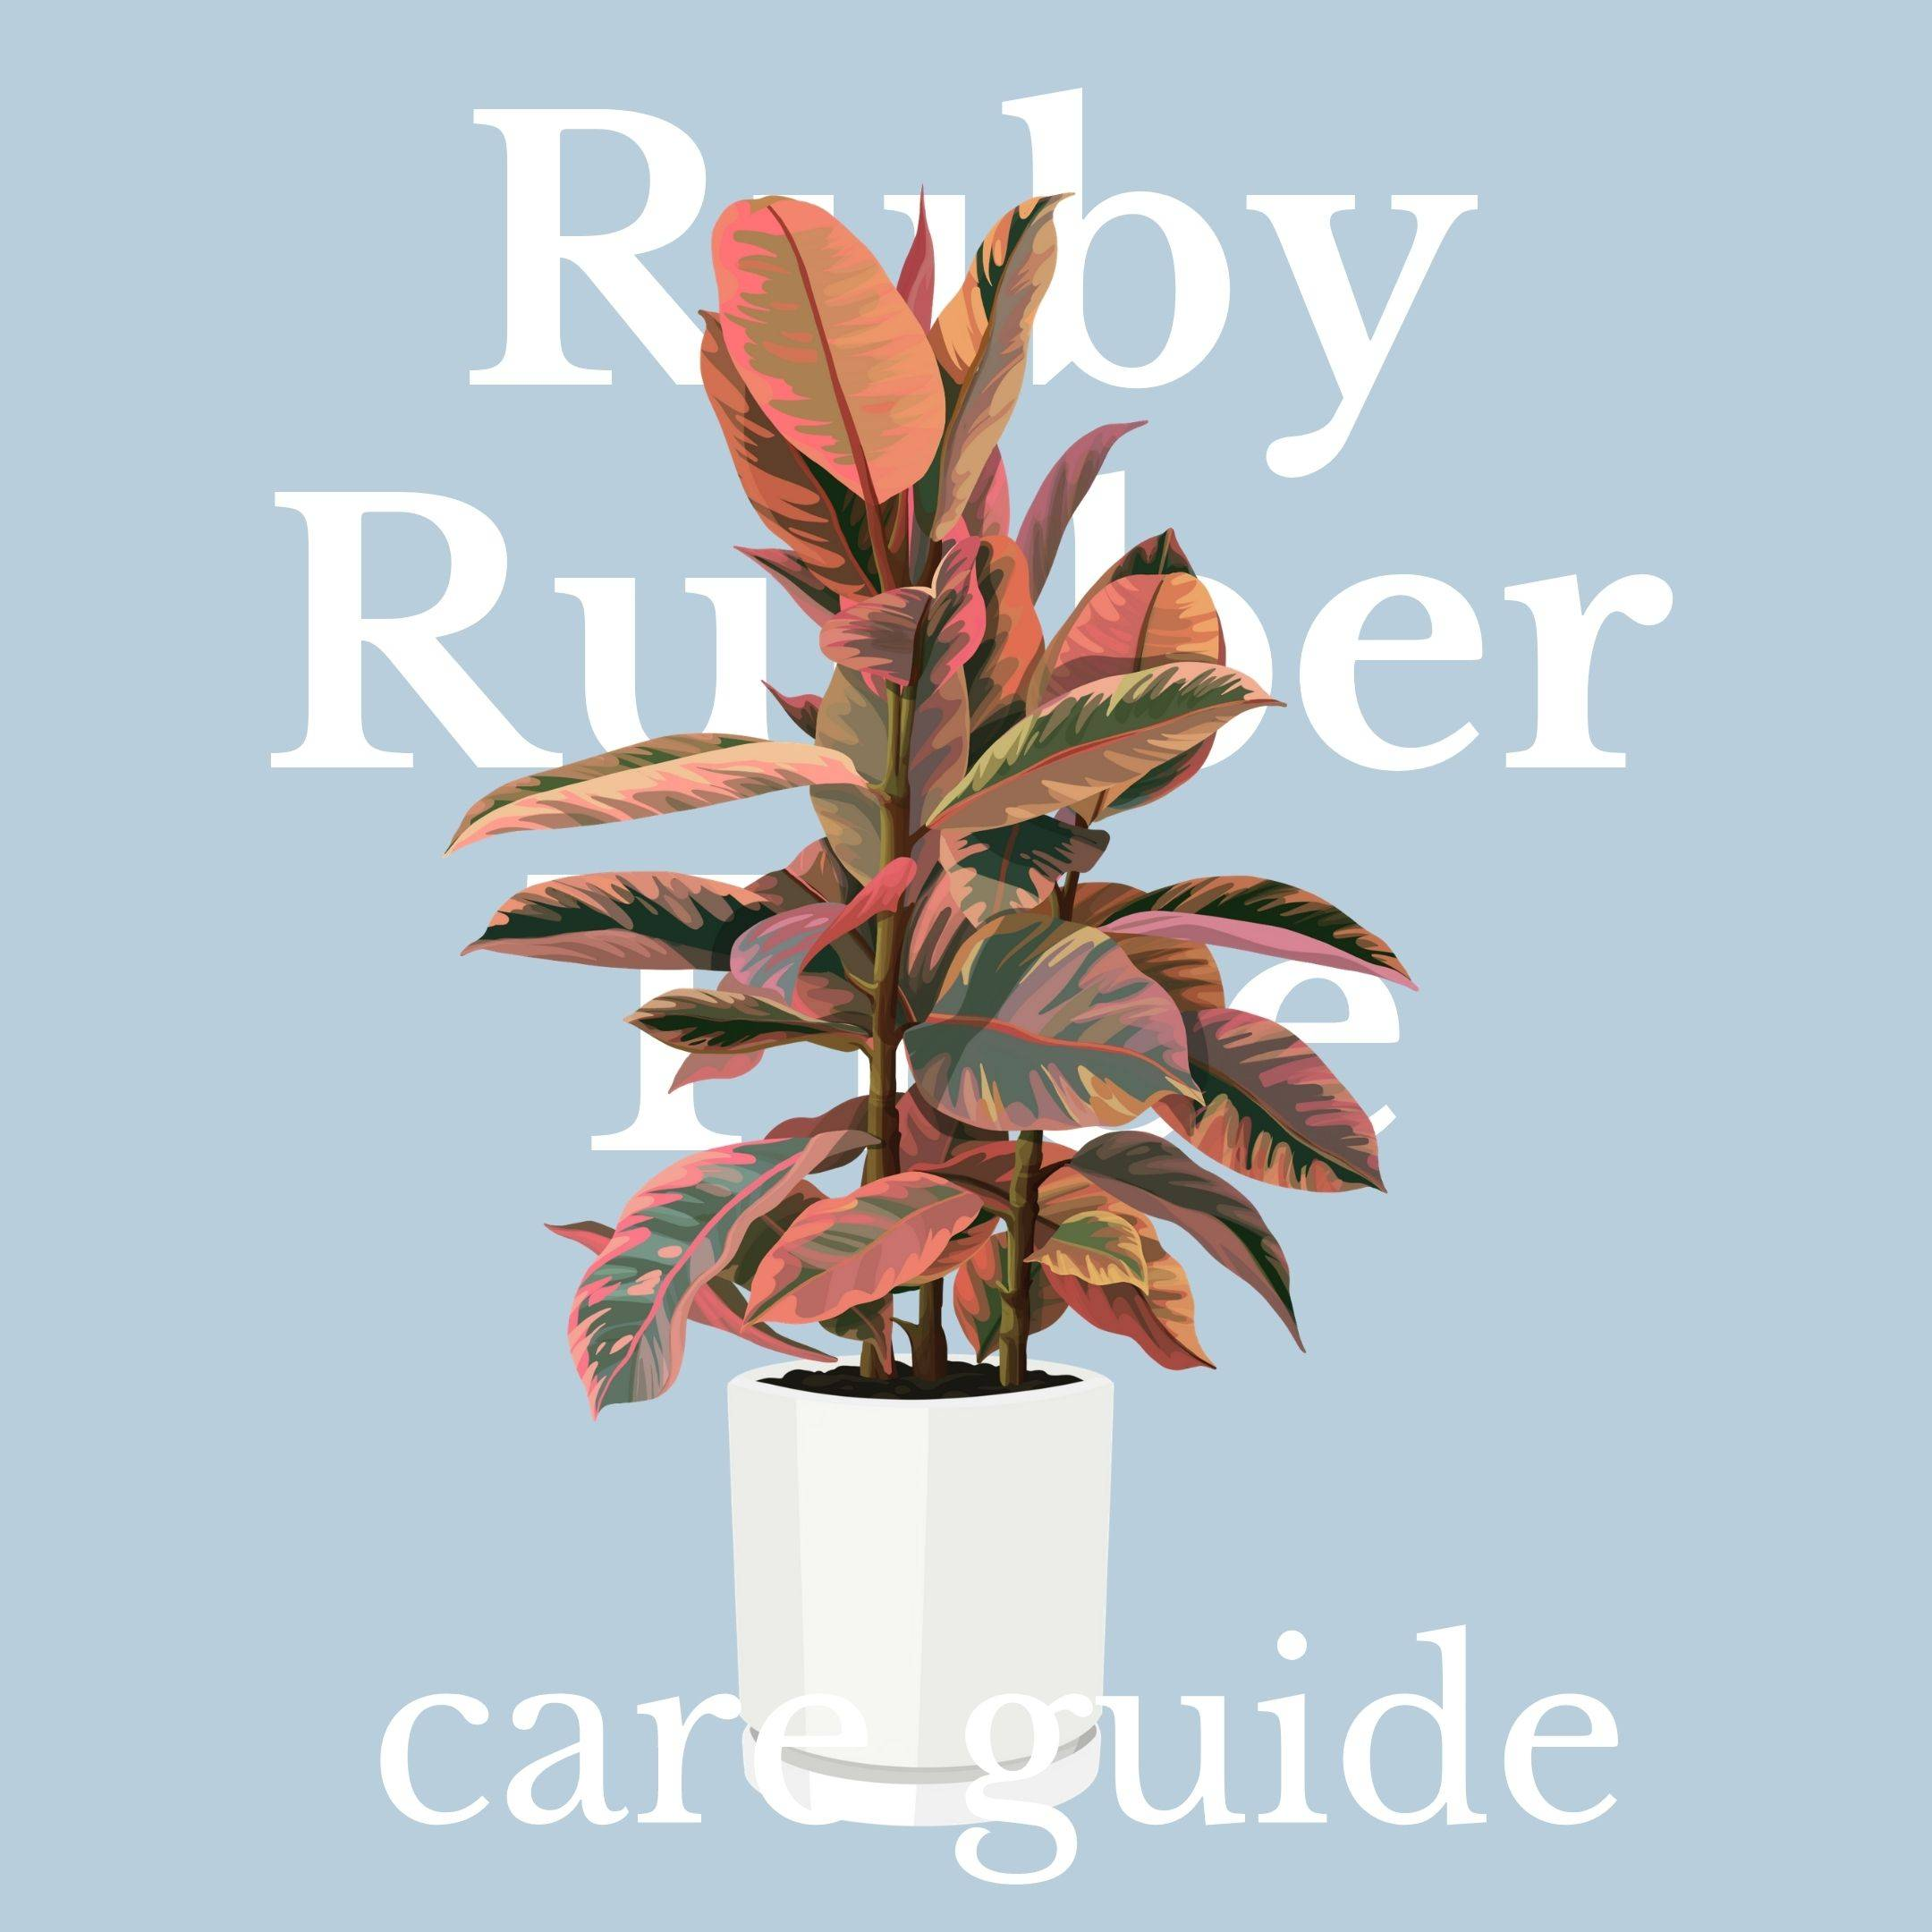 Drawing of the ruby rubber tree